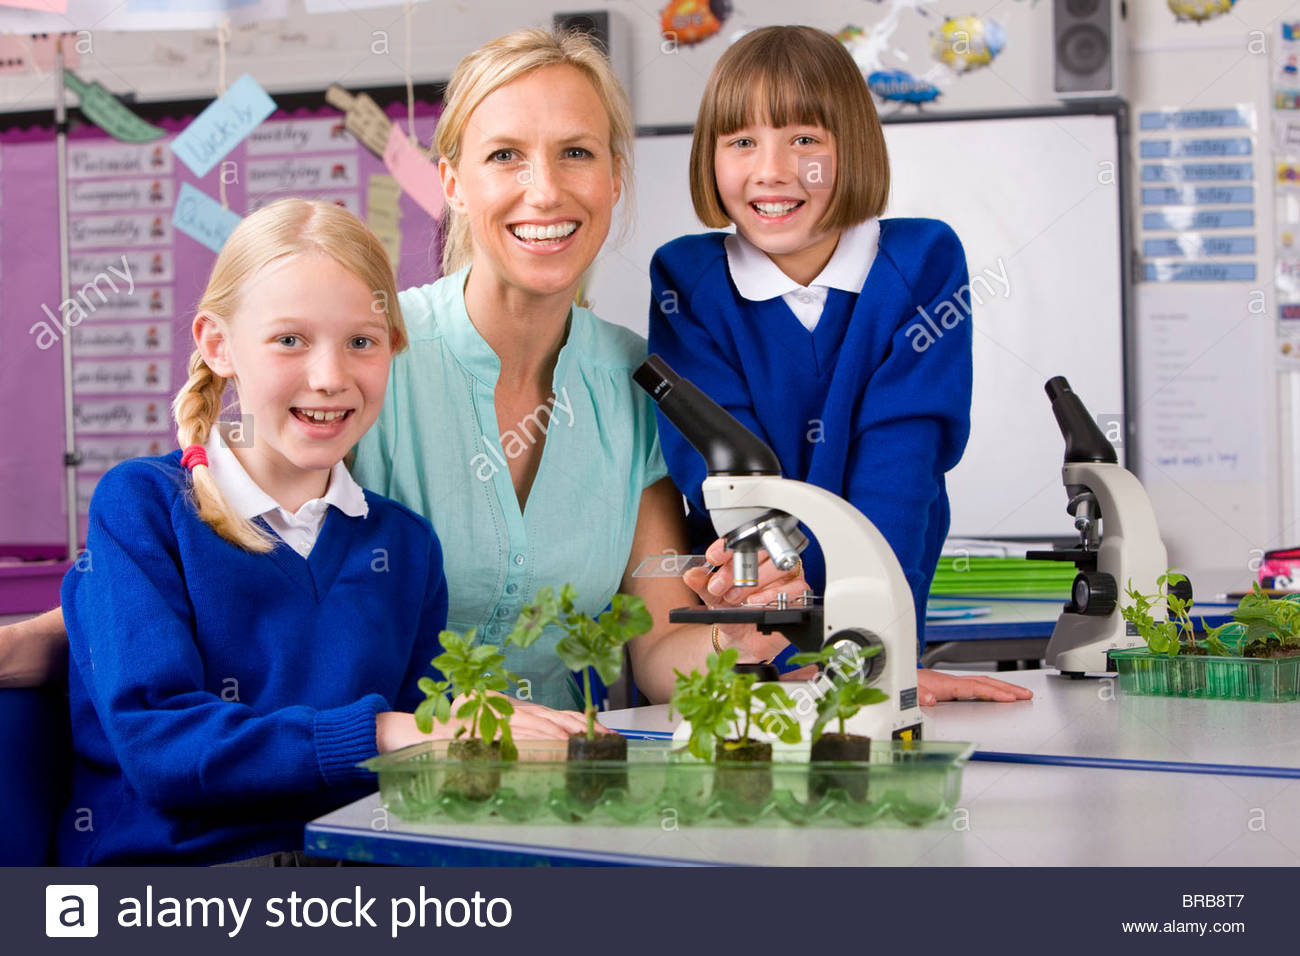 School children and teacher working with microscope in classroom laboratory - Stock Image